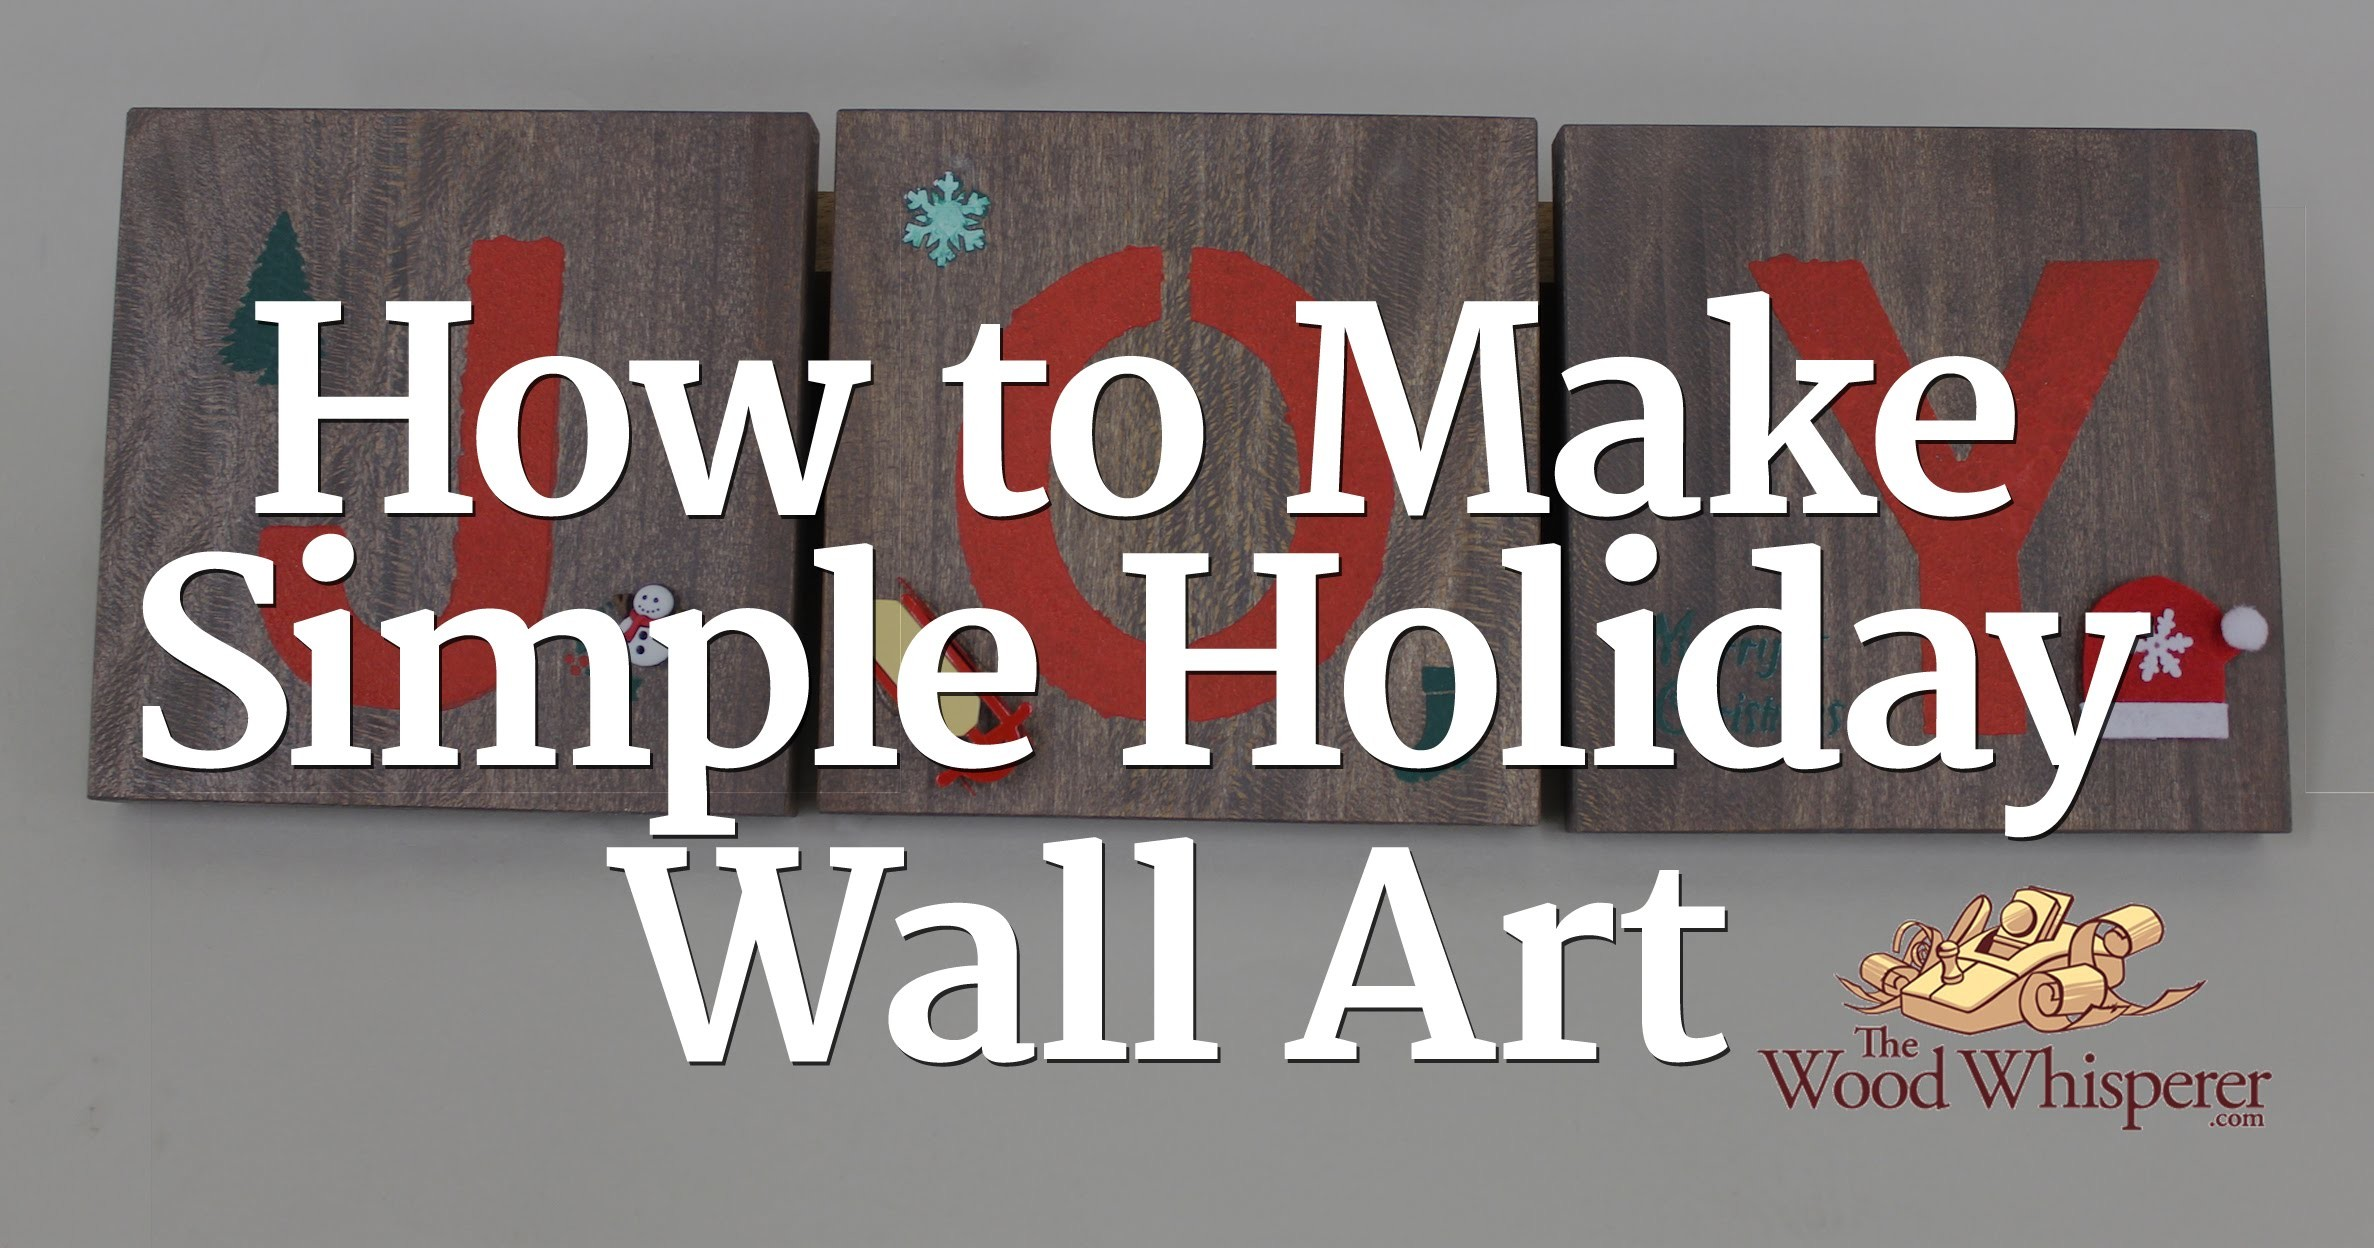 234 - Holiday Wall Art